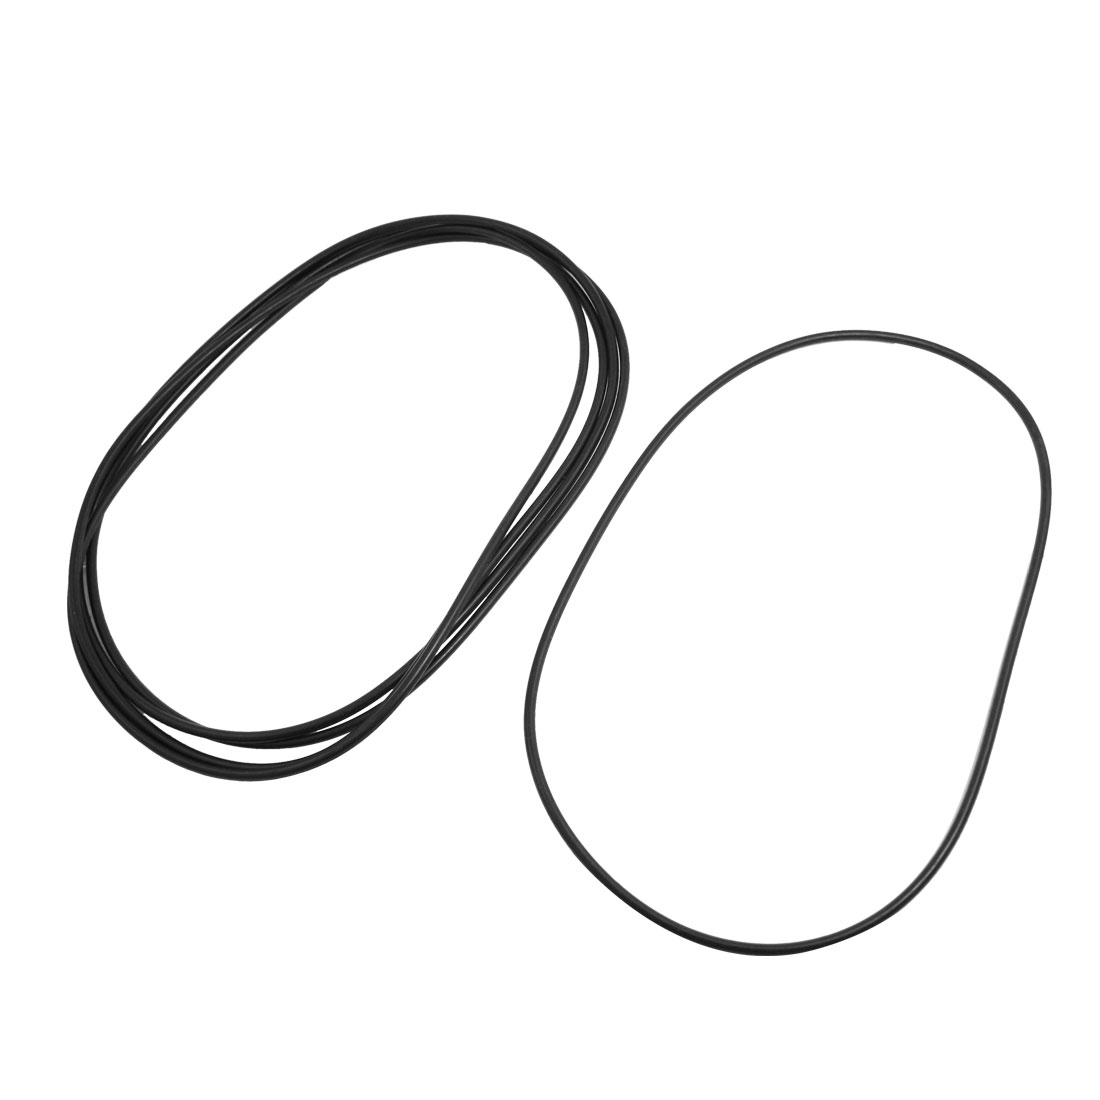 10 Pcs Oil Seal O Rings Black Nitrile Rubber 95mm OD 3.5mm Thickness